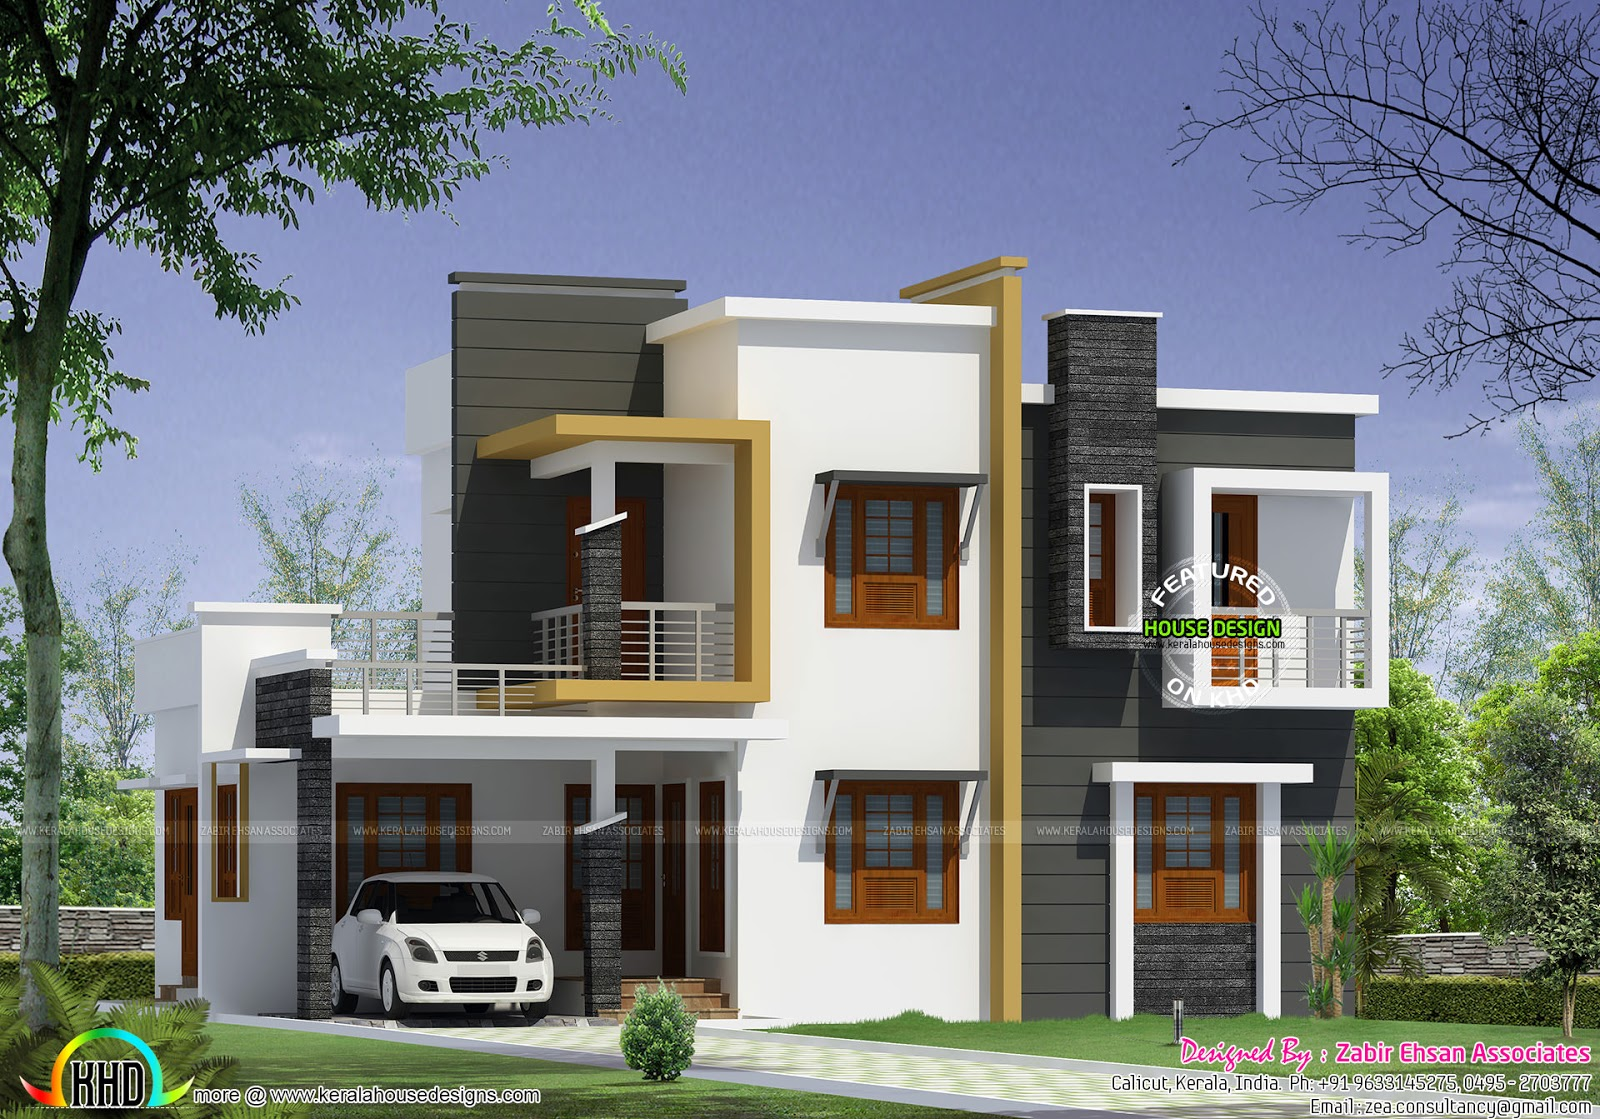 Box type modern house plan kerala home design and floor for Small contemporary home designs